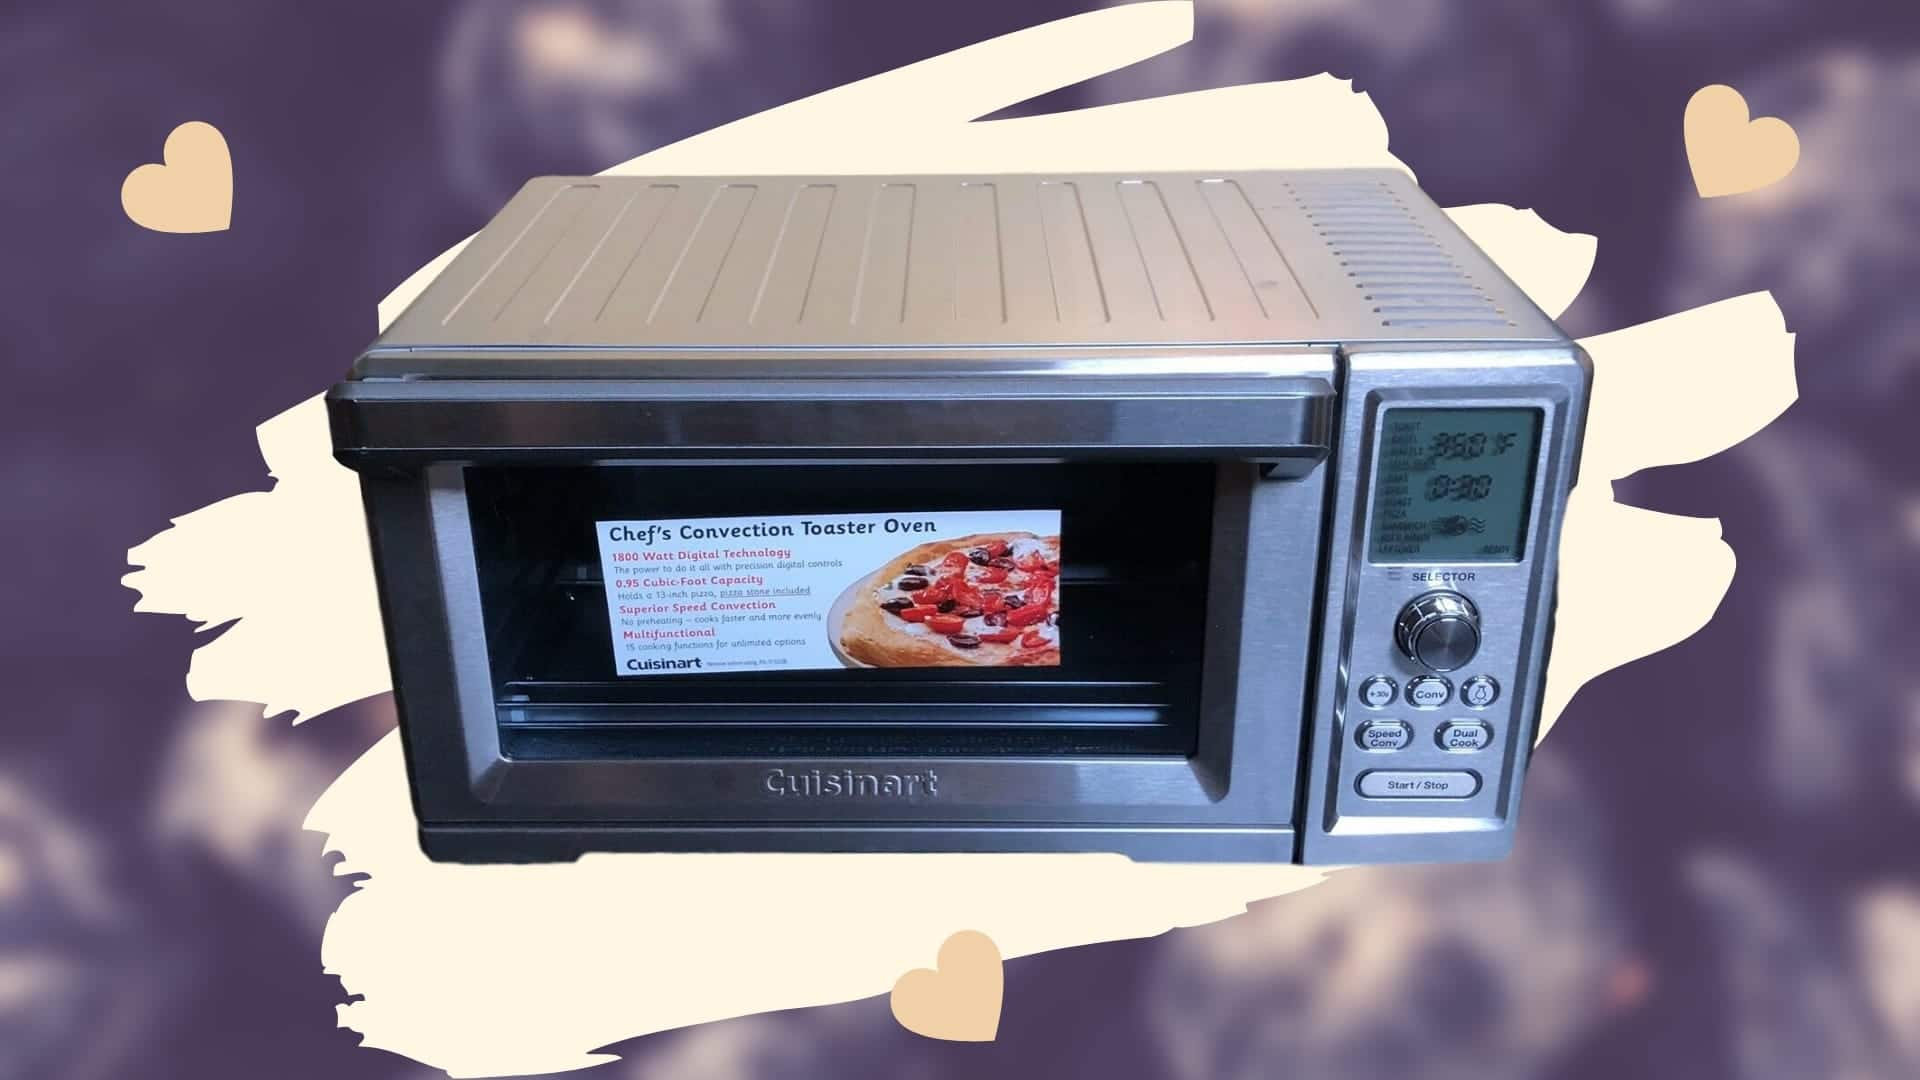 Cuisinart TOB 260N1 Toaster Oven featured image